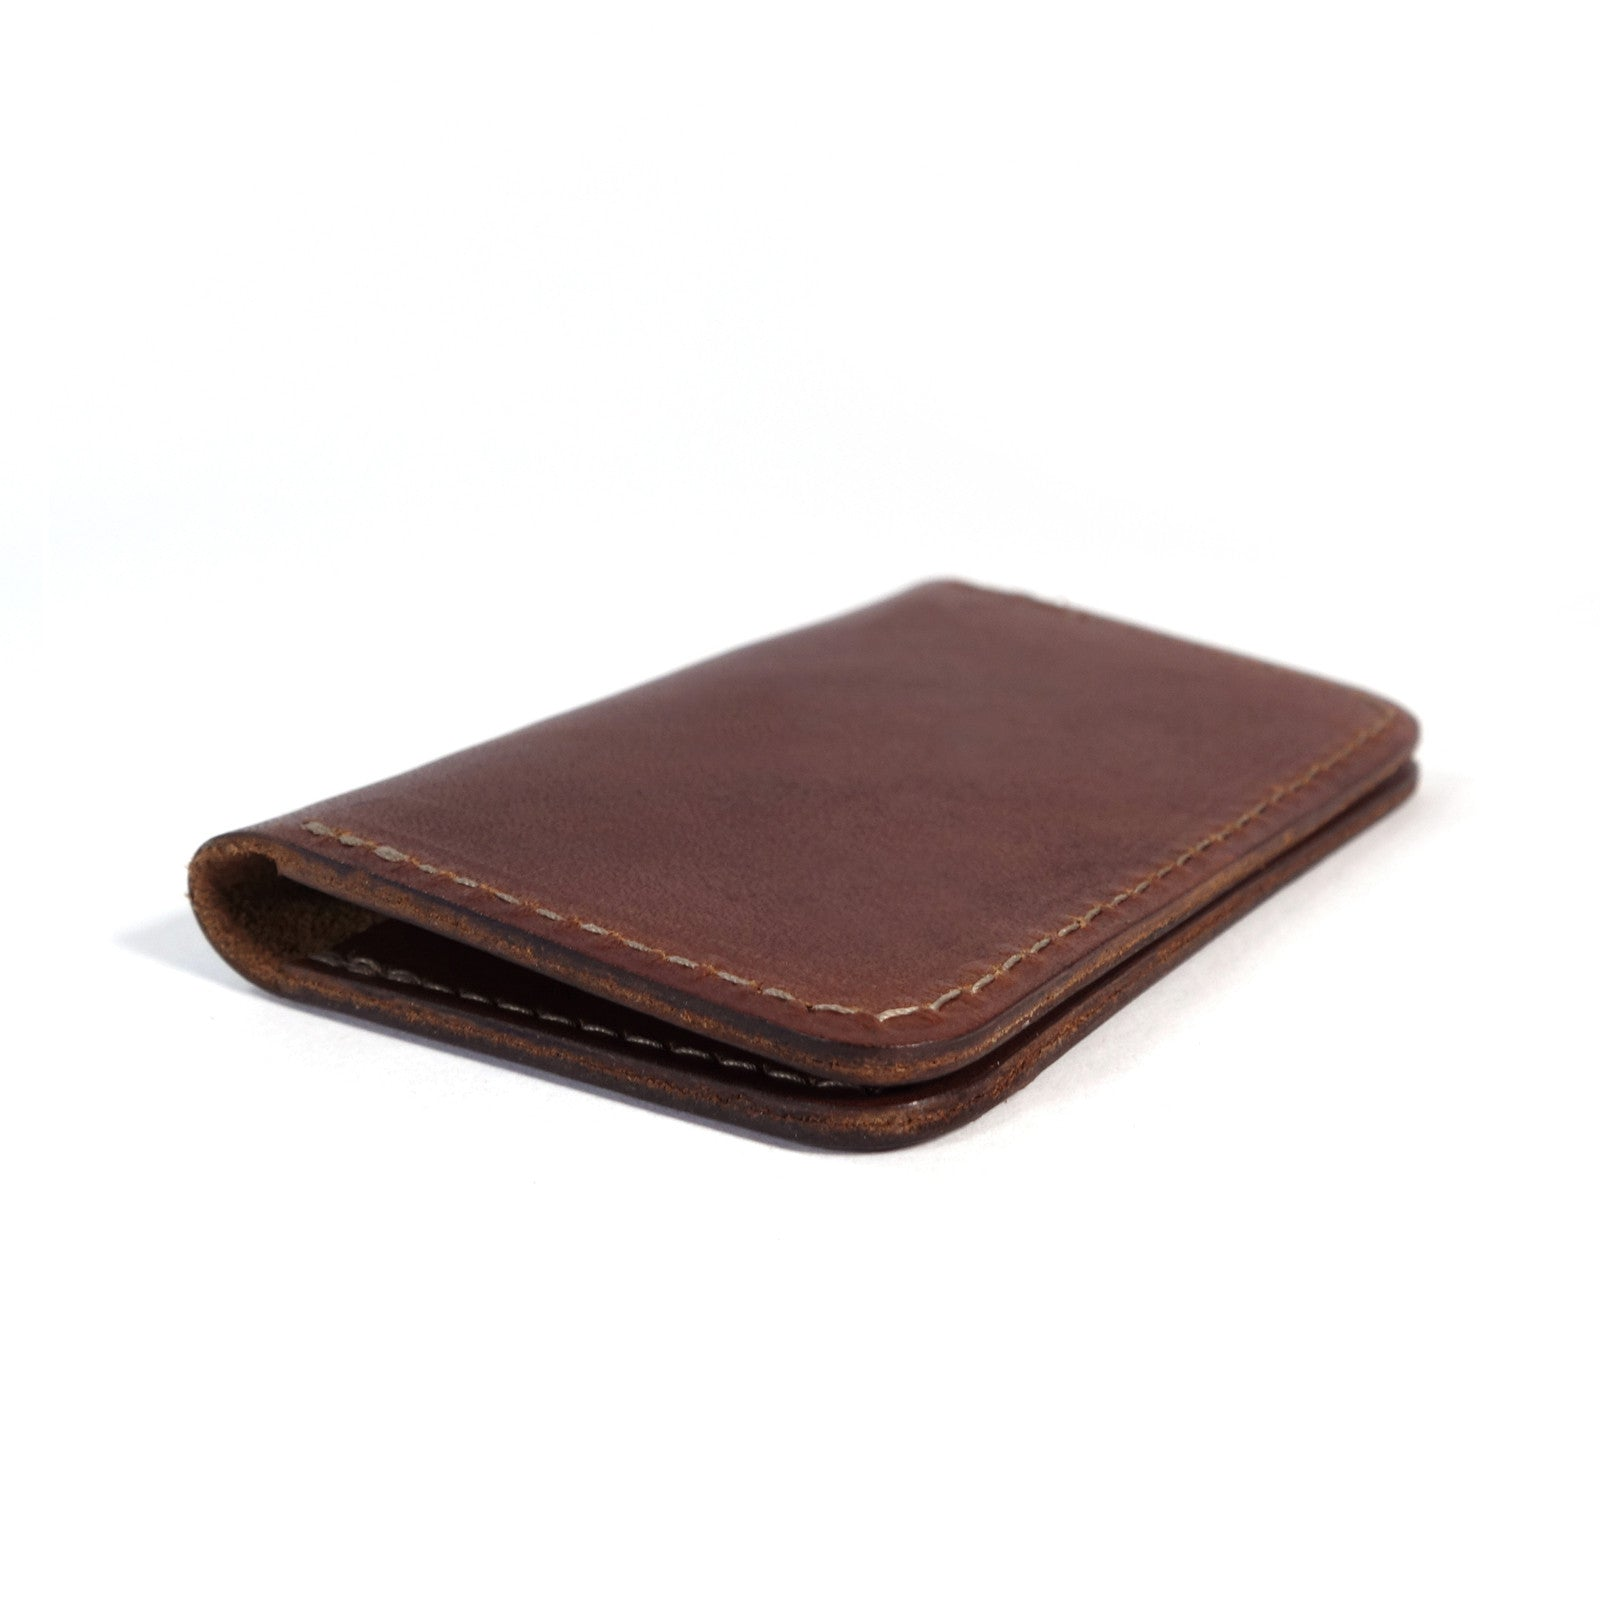 Frontside wallet. Card wallet. slim card case. leather card wallet. For those who like to keep their wallets in their front pockets. Slim enough to comfortably carry and large enough to fit your essential cards and some cash.  3/4oz Herman Oak Vegetable-Tanned Leather 2 Card-Slots